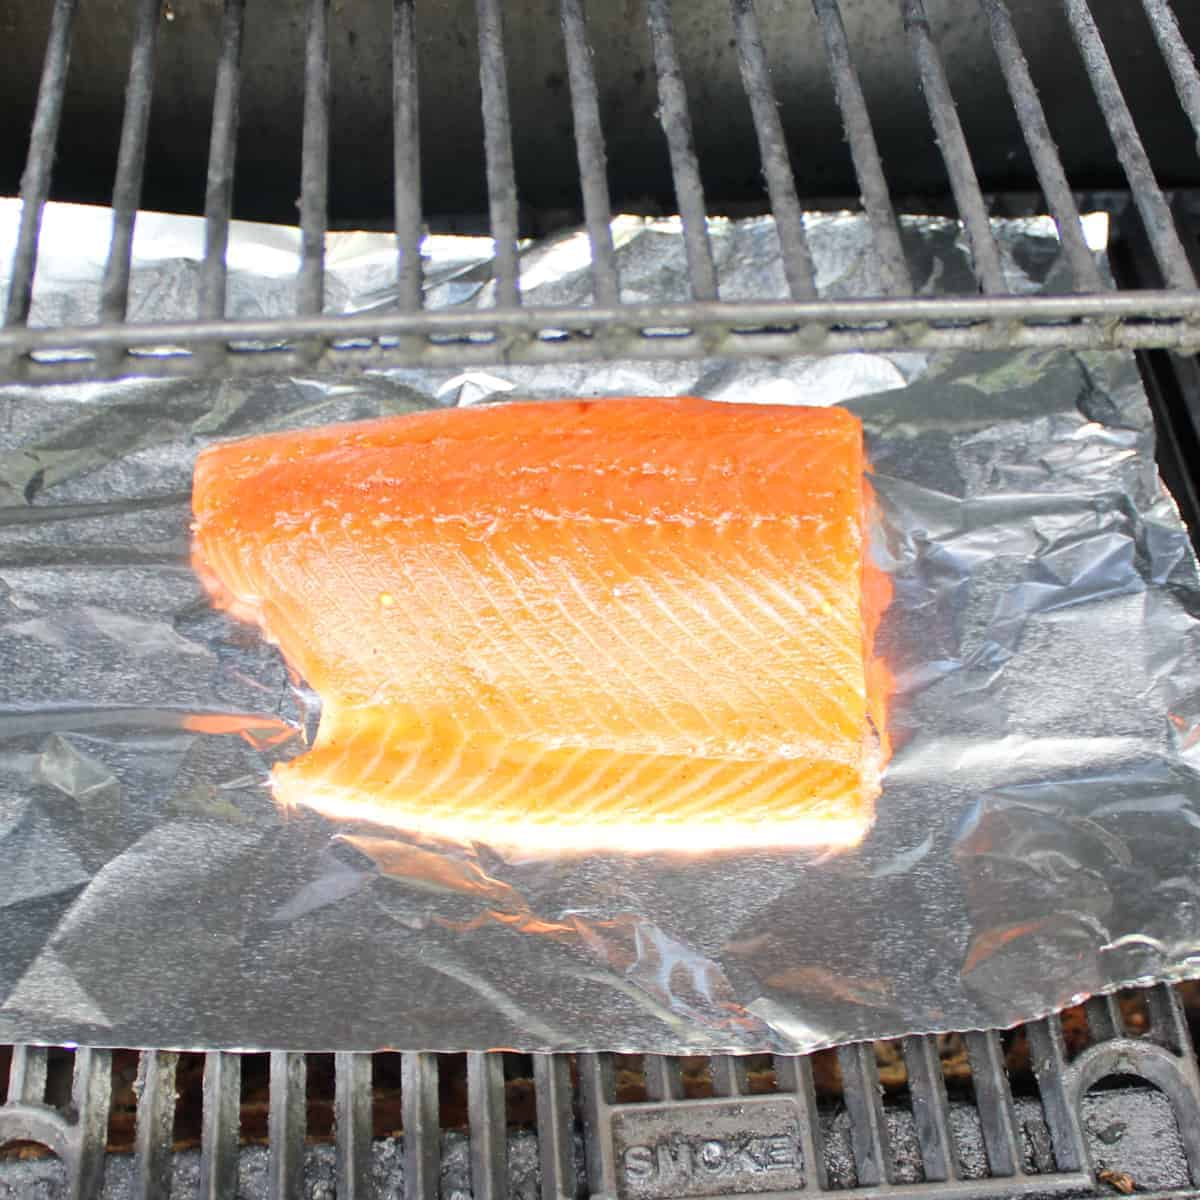 fish on aluminum foil in a smoker